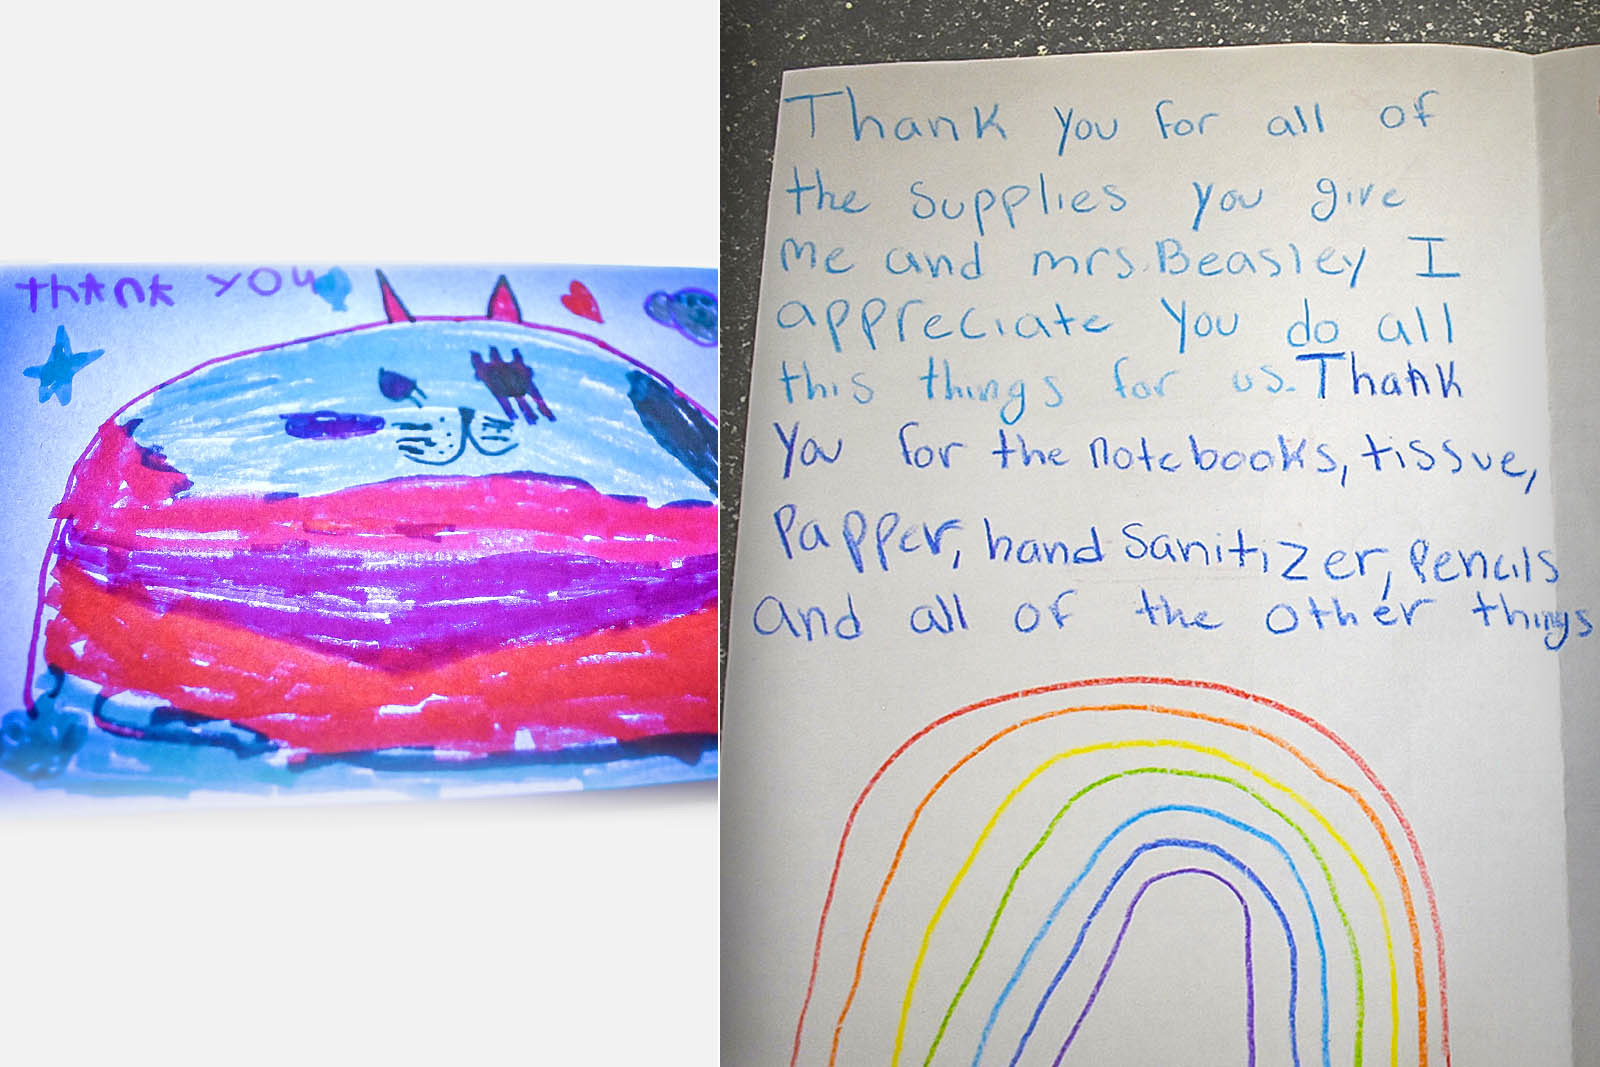 Students have written creative thank you notes to Classroom Central for the pencils, notebooks, markers and more they've received that inspire their learning.